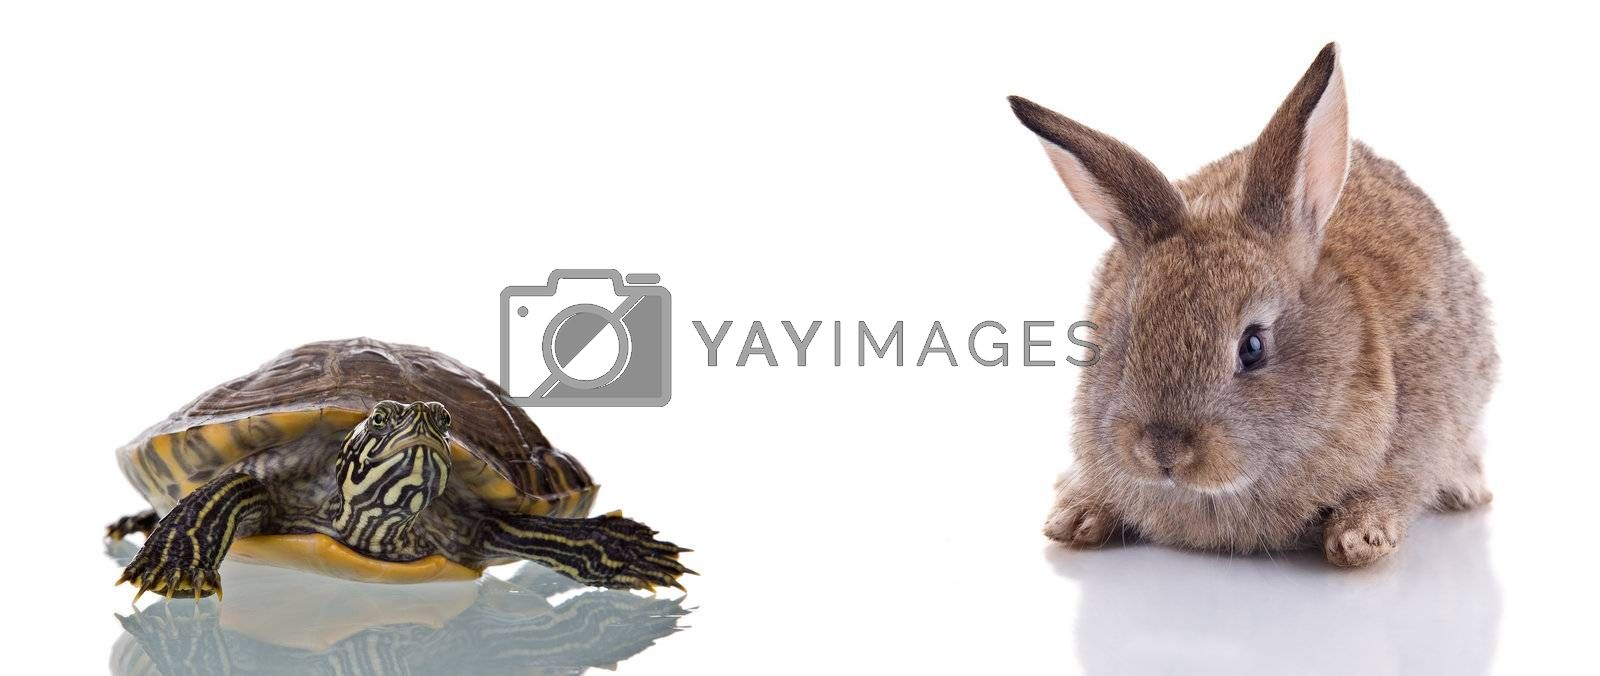 Cute Bunny and Turtle, isolated on white background. Concept: Competition